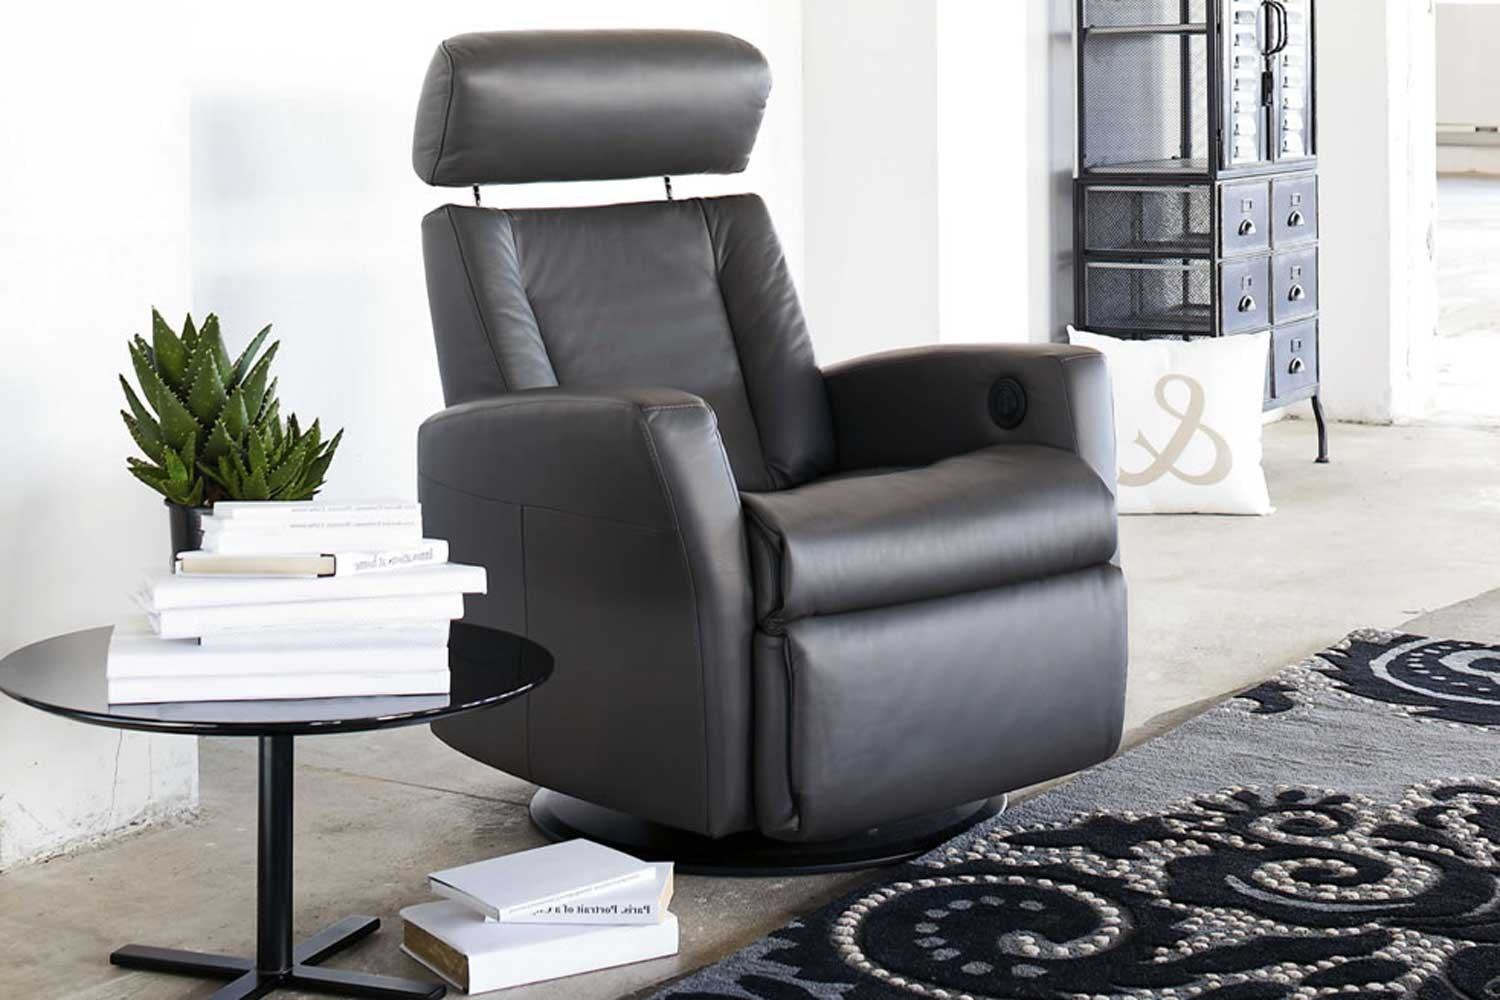 lotus wall saver electric recliner trend leather by img - Electric Recliner Chairs